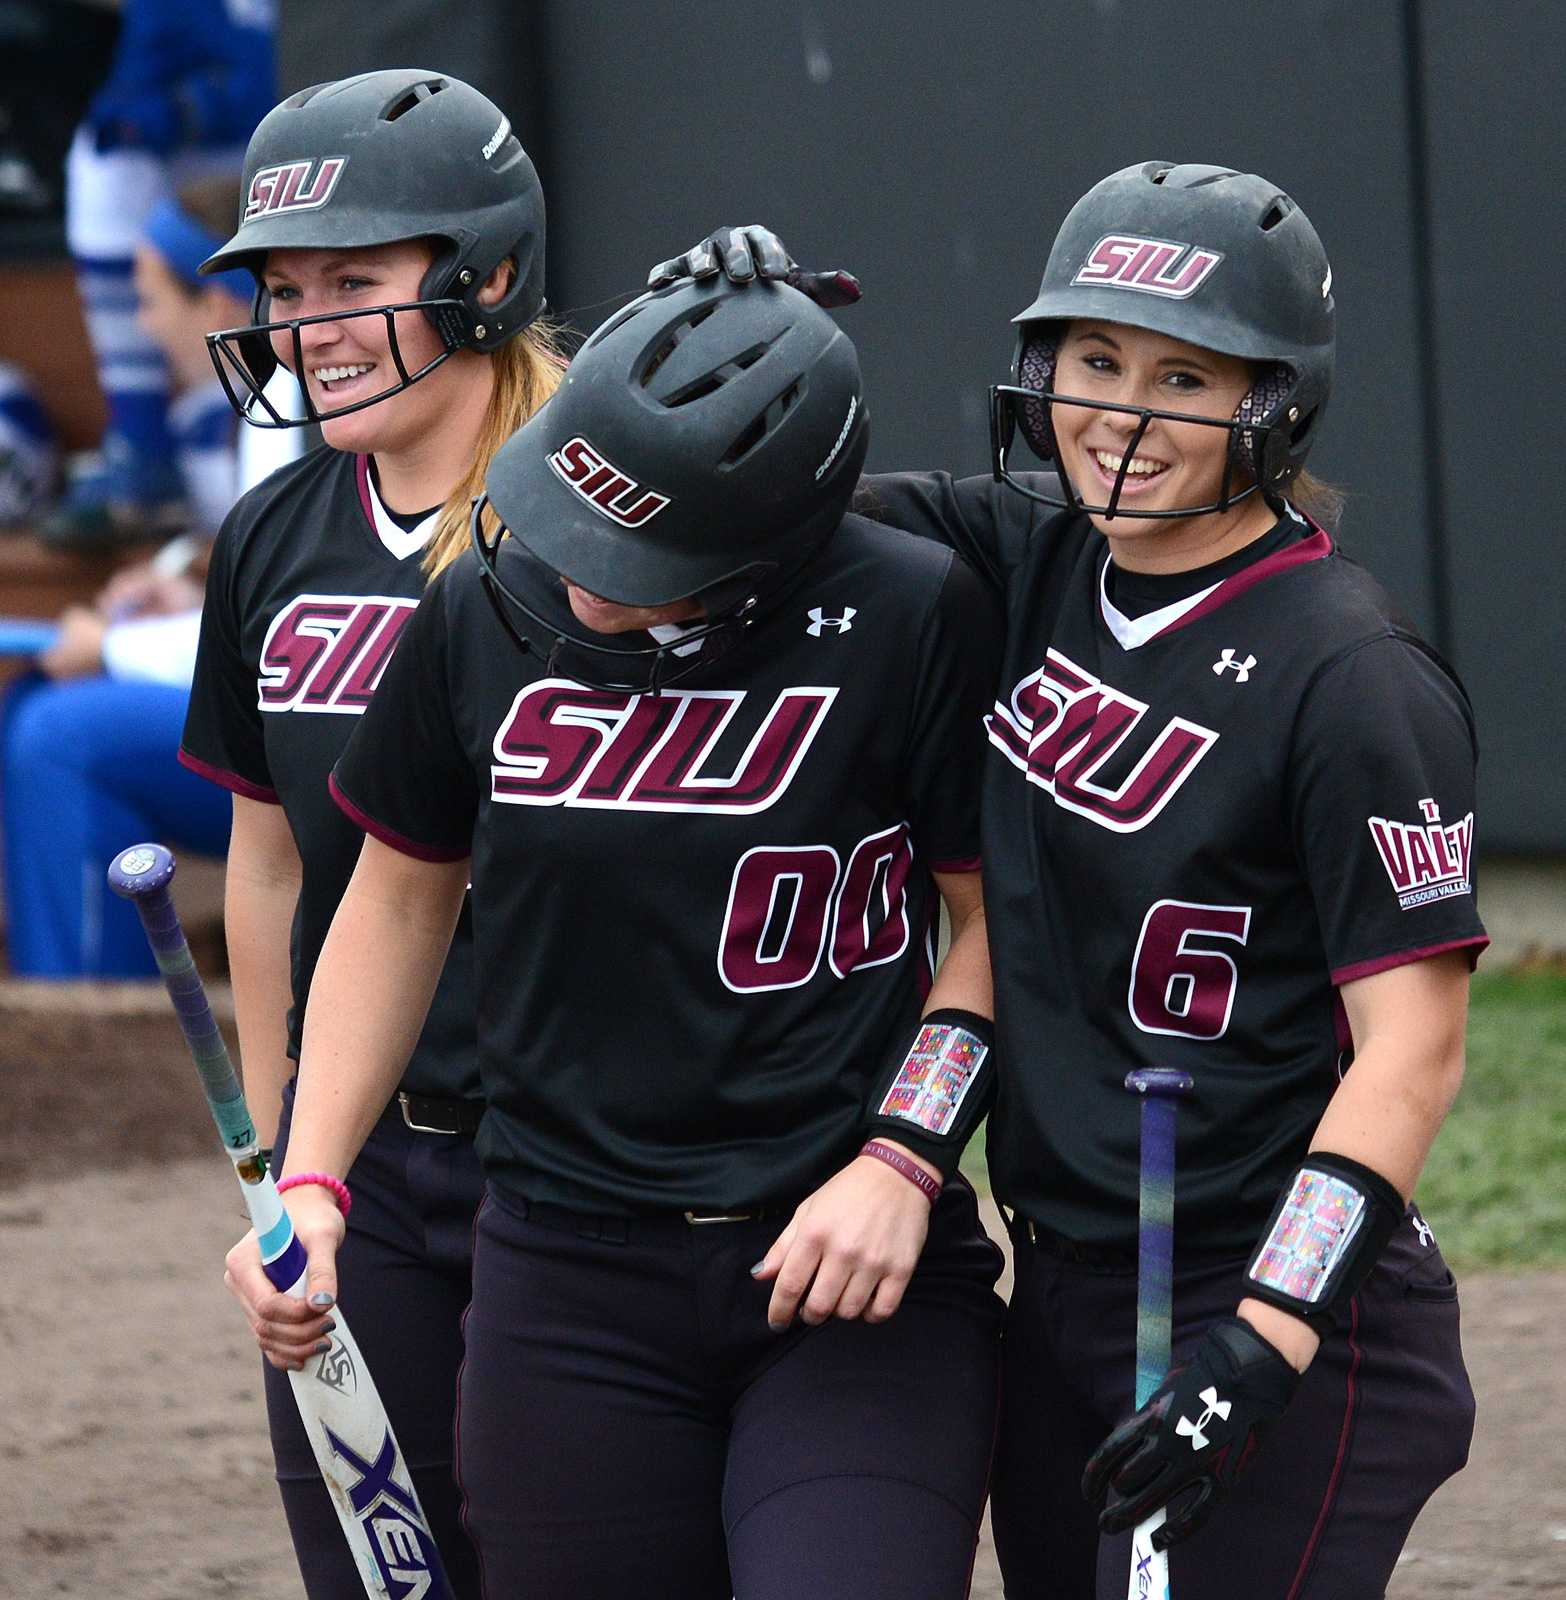 Senior catcher Jessa Thomas, left, junior third baseman Sydney Jones and junior shortstop Savannah Fisher and celebrate scoring Sunday, March 26, 2017, in the fourth inning of SIU's 6-2 victory against Drake in the first game of its doubleheader at Charlotte West Stadium. (Sean Carley | @SeanMCarley)